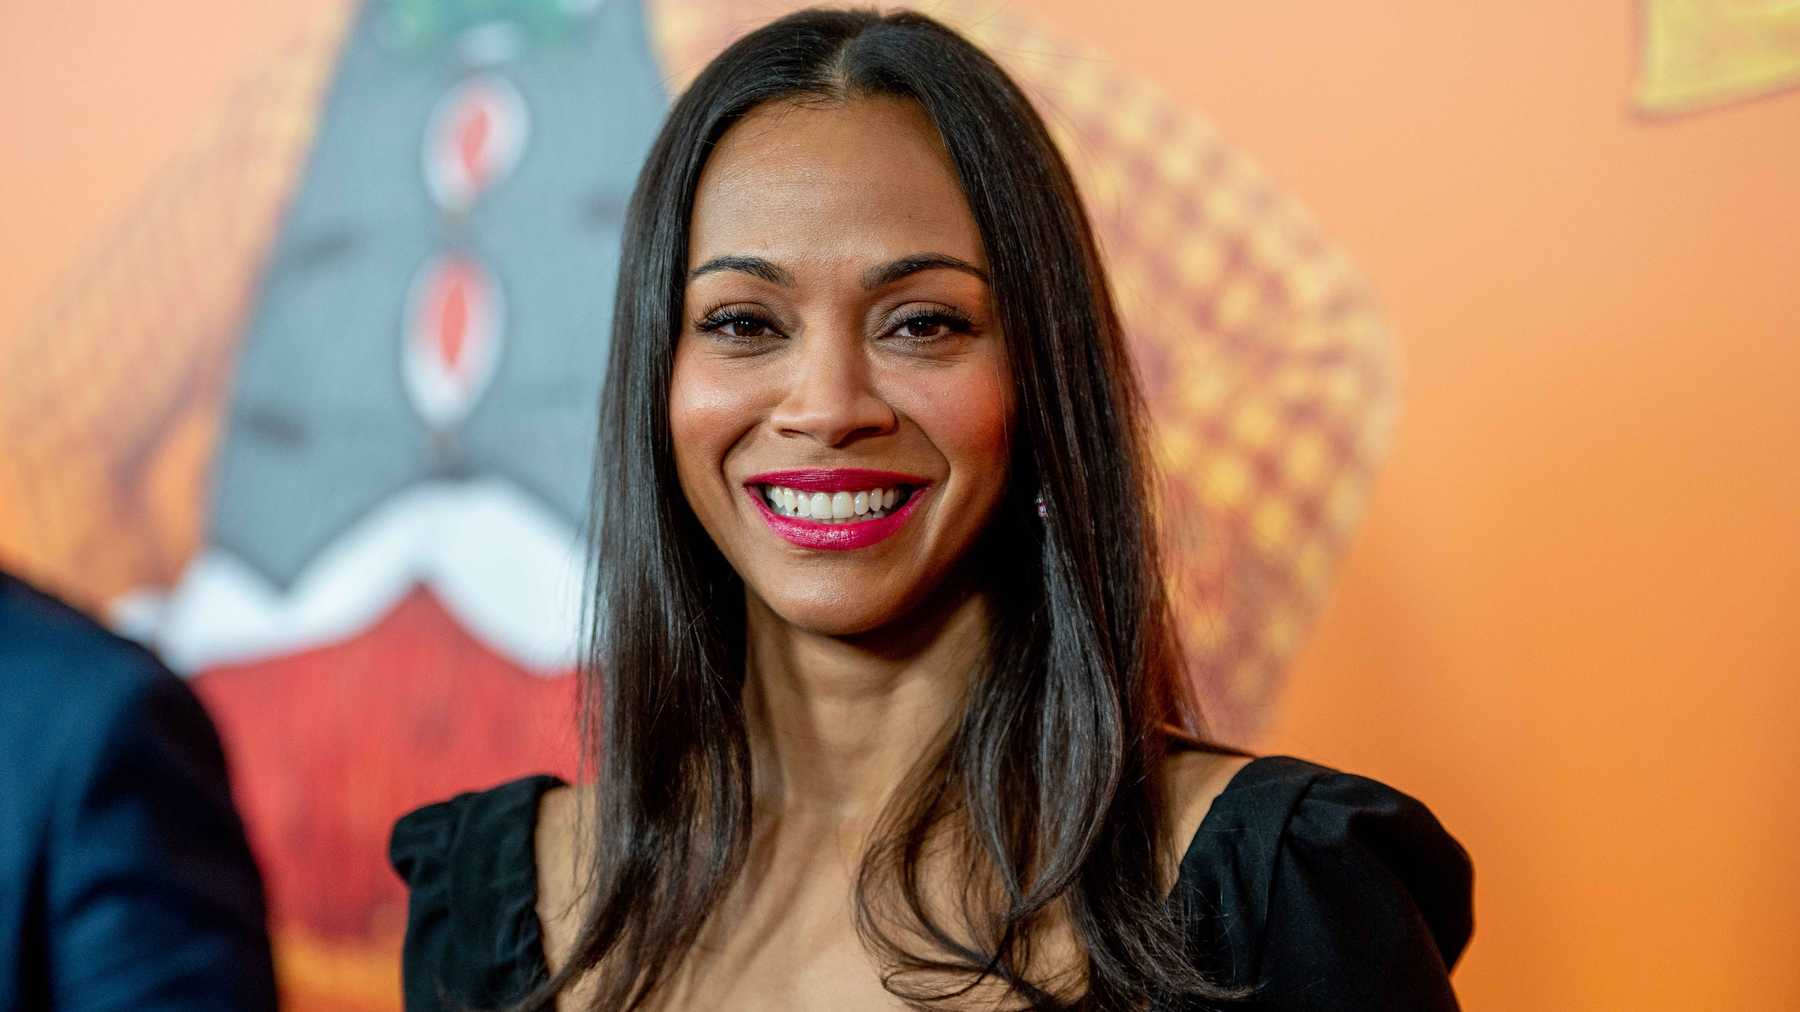 Zoe Saldana On For Isis Drama Sabaya Movies Empire